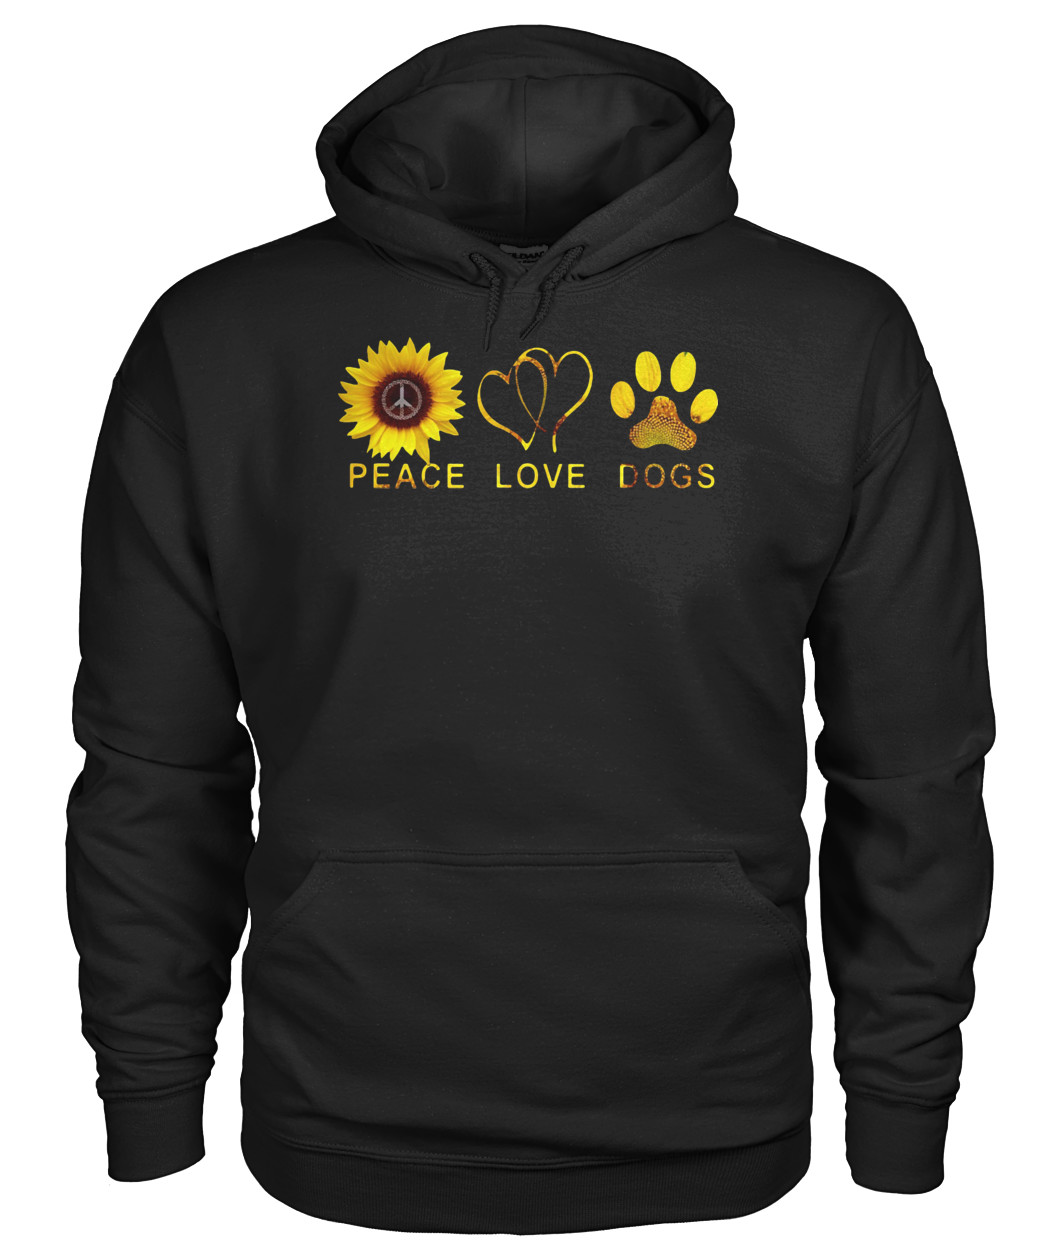 Peace love and dogs sunflower gildan hoodie